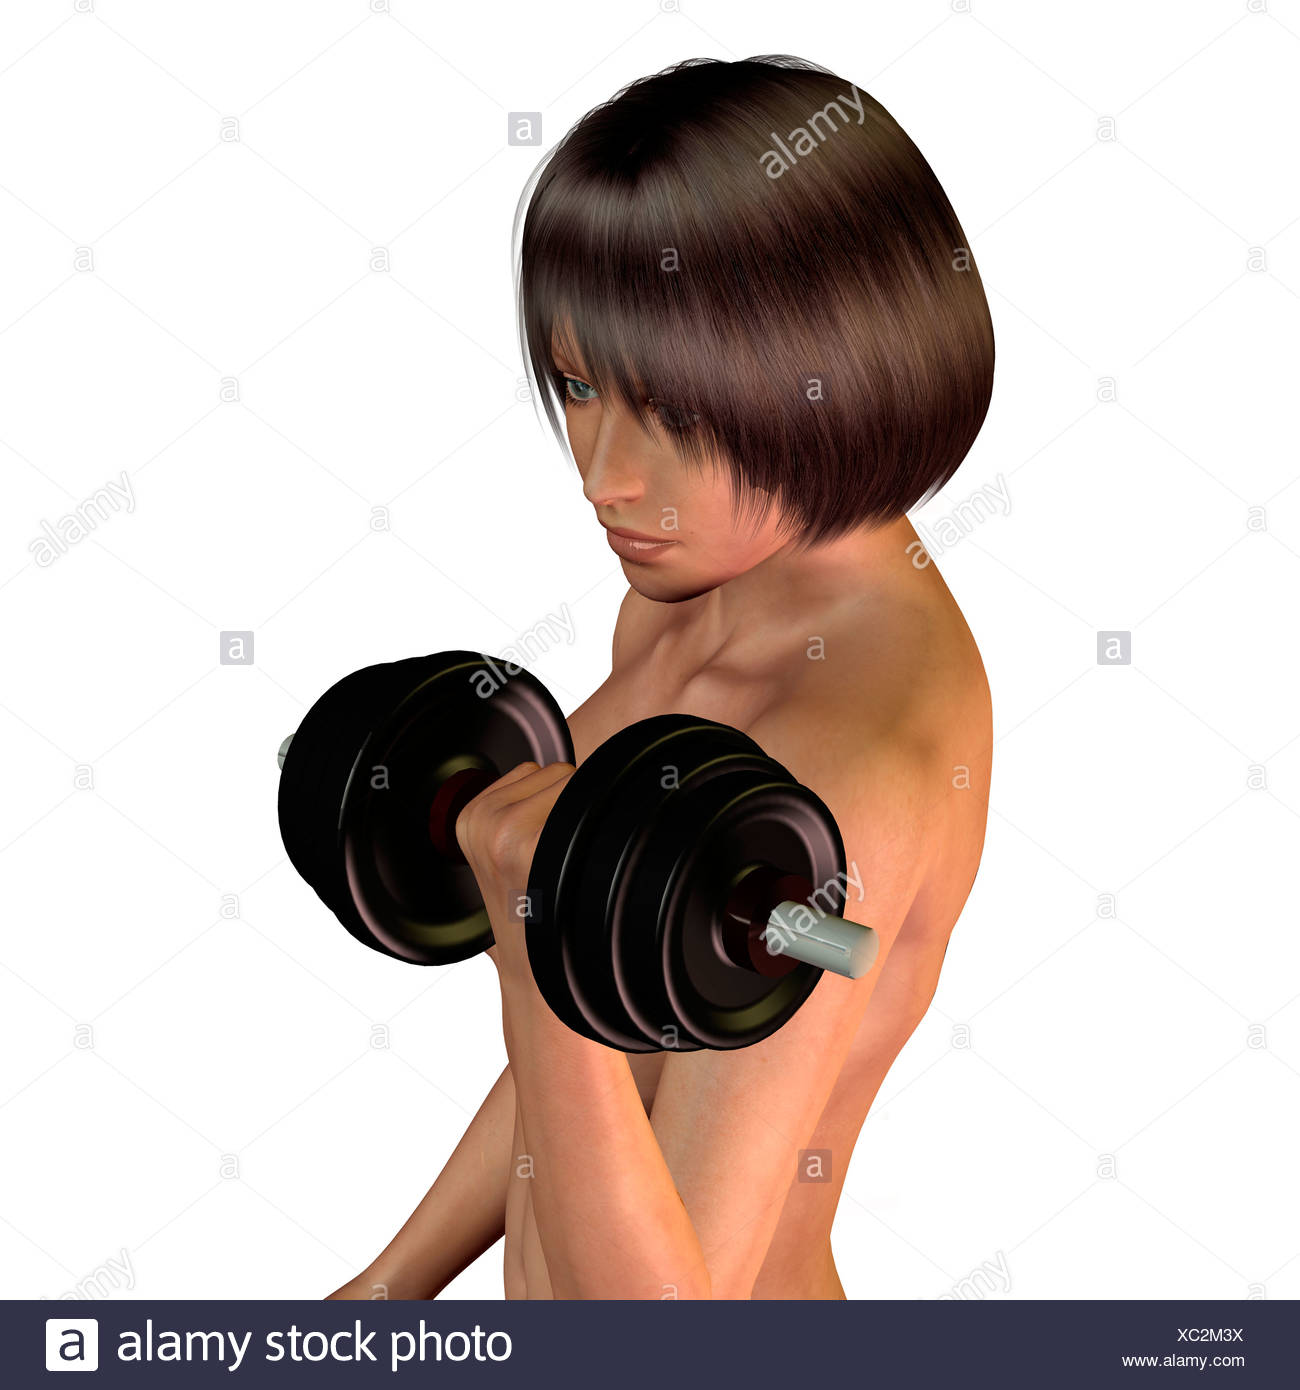 Androgynic person doing workout - Stock Image